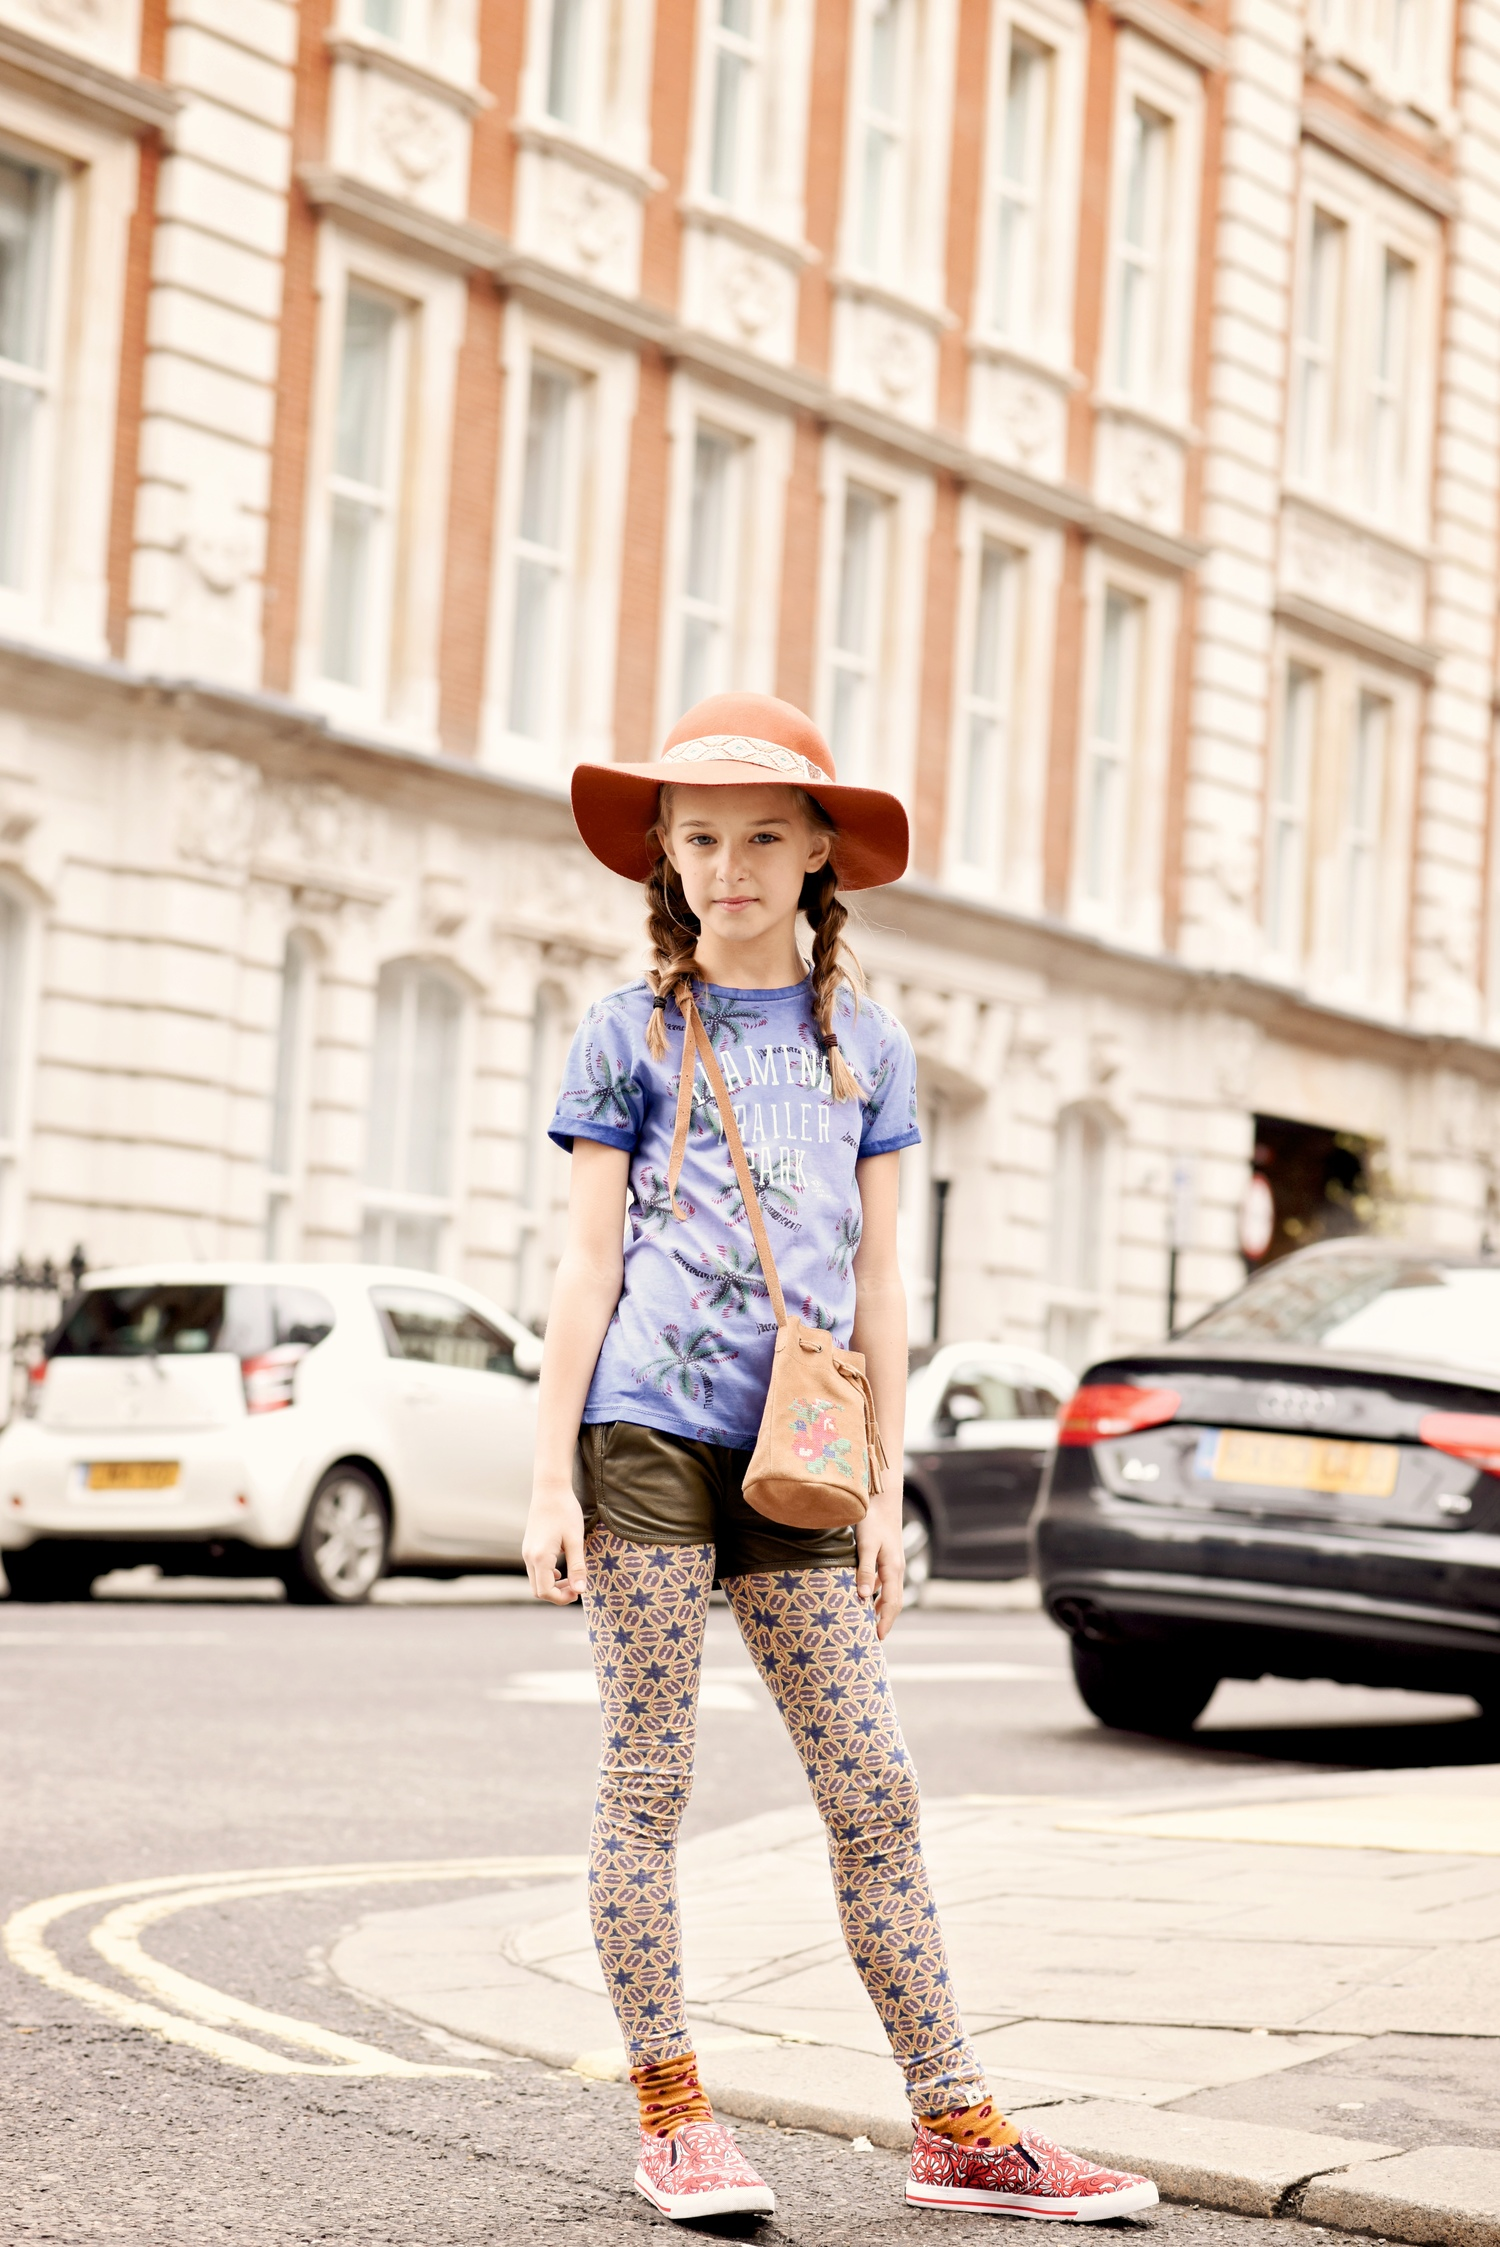 Enfant+Street+Style+by+Gina+Kim+Photography-2.jpeg